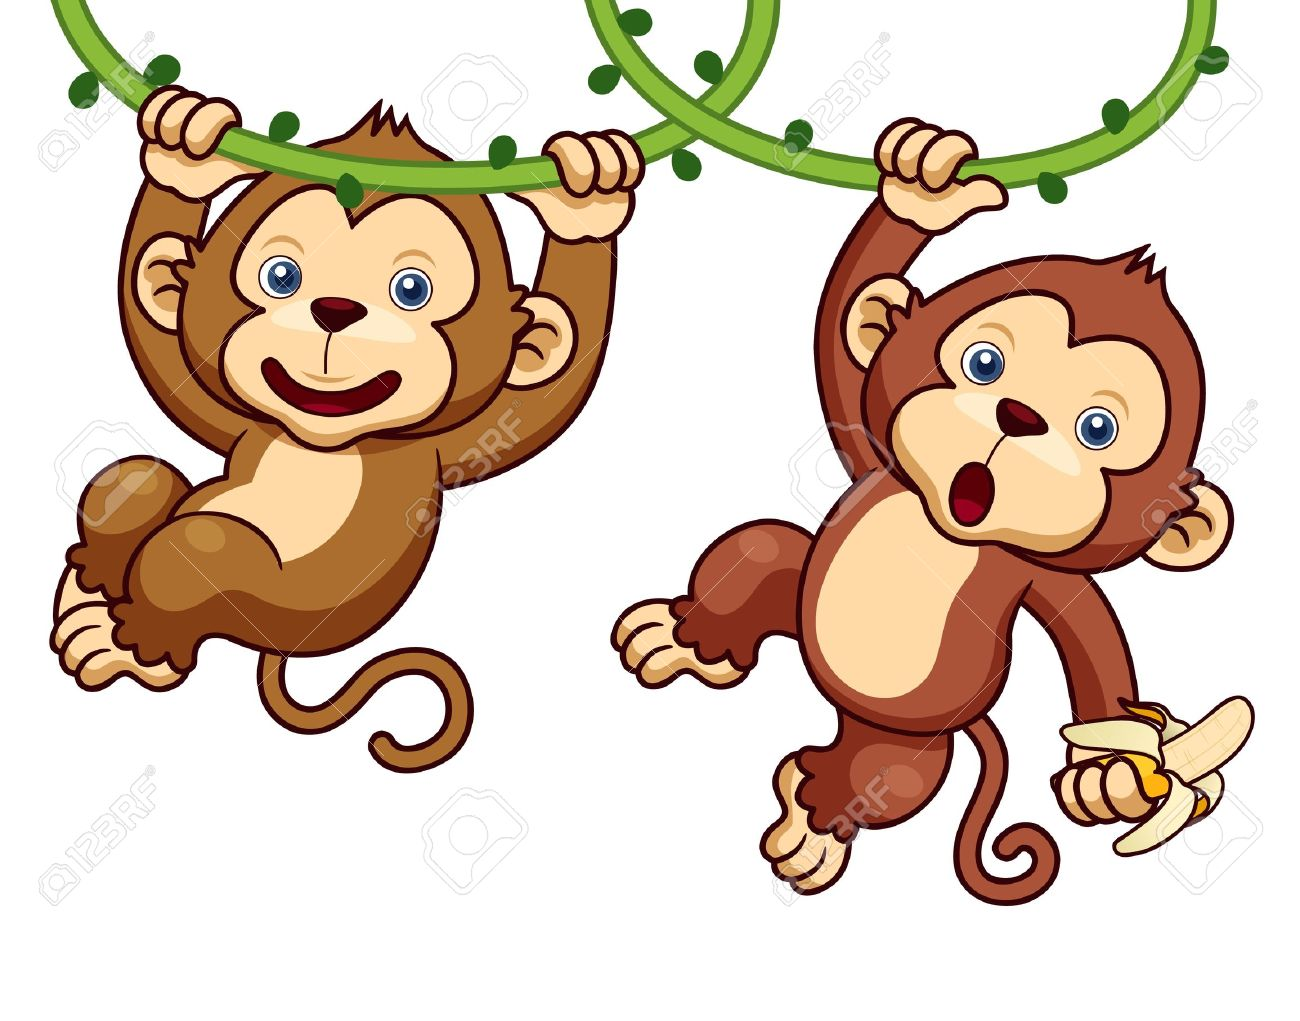 illustration of cartoon monkeys royalty free cliparts vectors and